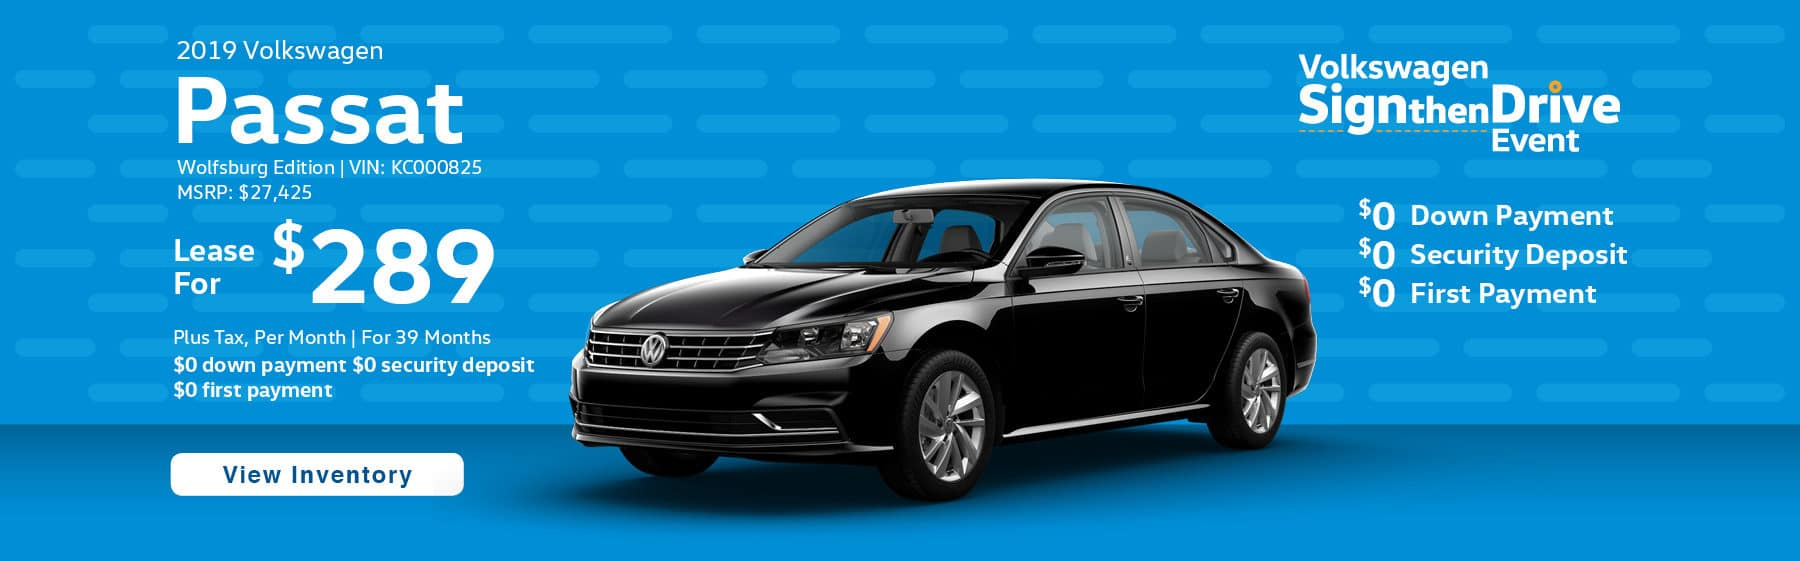 Lease the 2019 Volkswagen Passat Wolfsburg Edition for $289 plus tax for 39 months. $0 Down payment required.